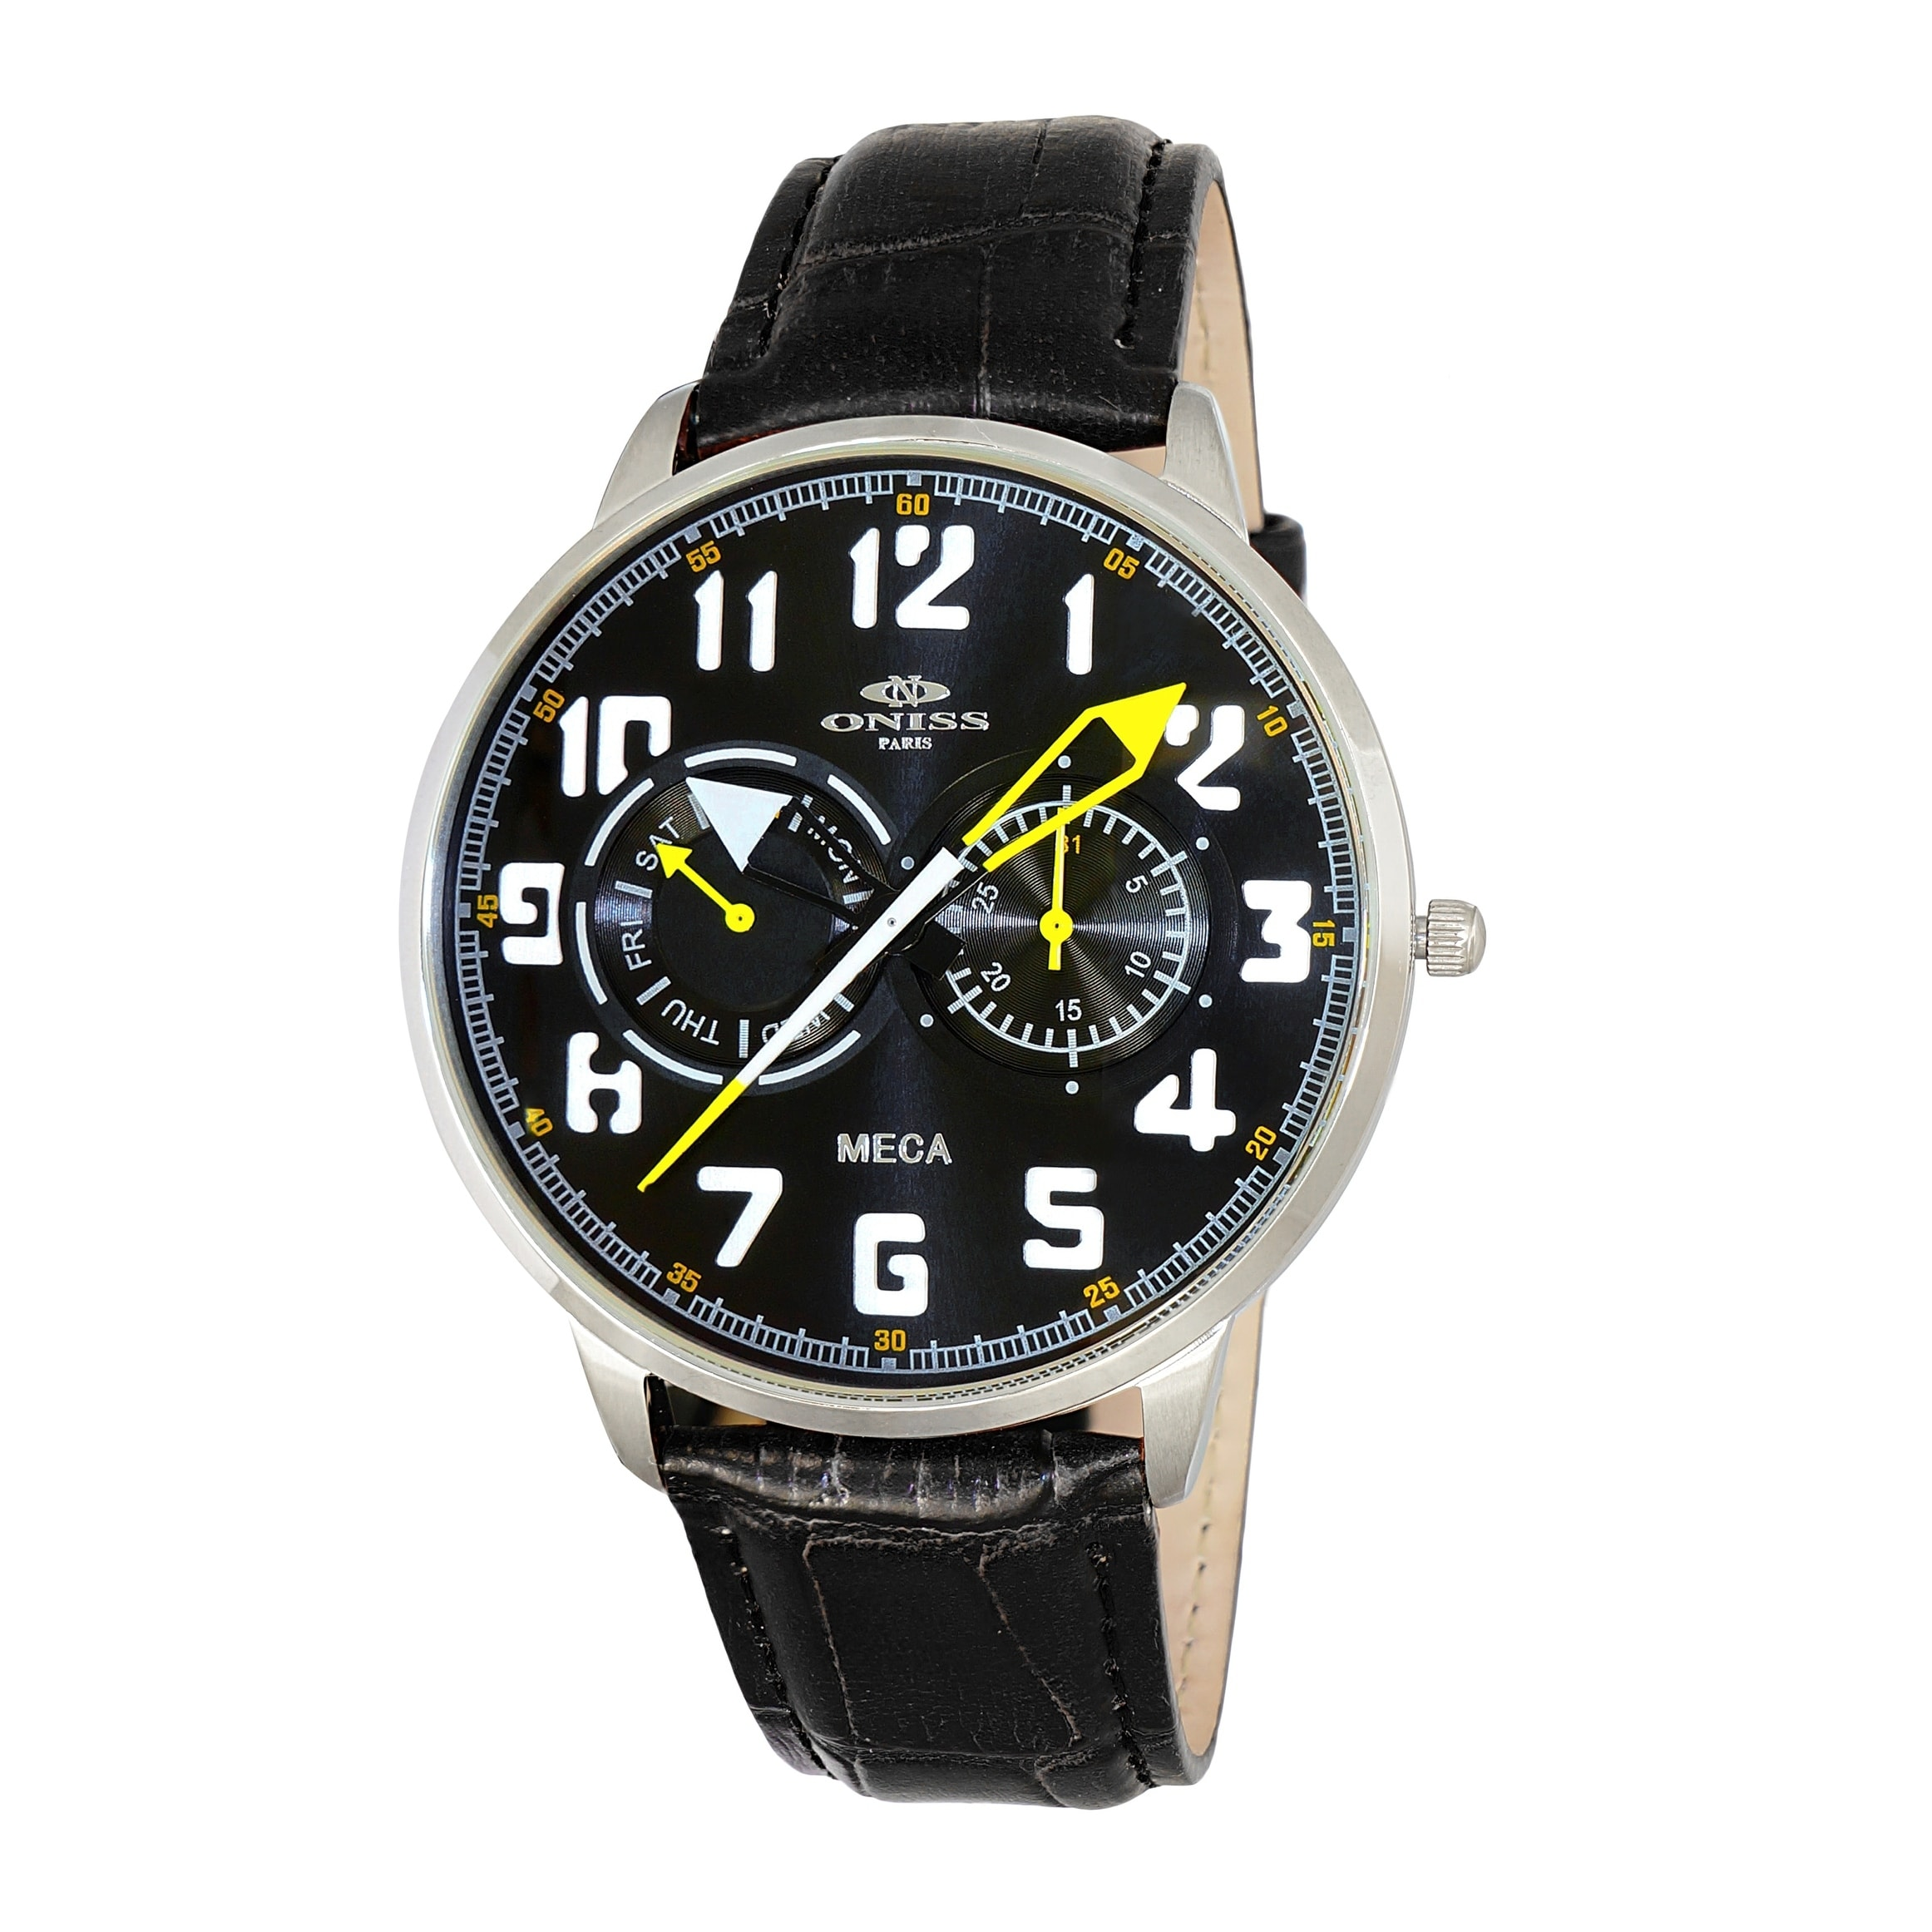 luxury wherever black feet splatterproof itm cool your men band date takes its watch megir those design watches army is great sporty analog who you on look compromise us go t appearance chronograph won for metallic leather wrist